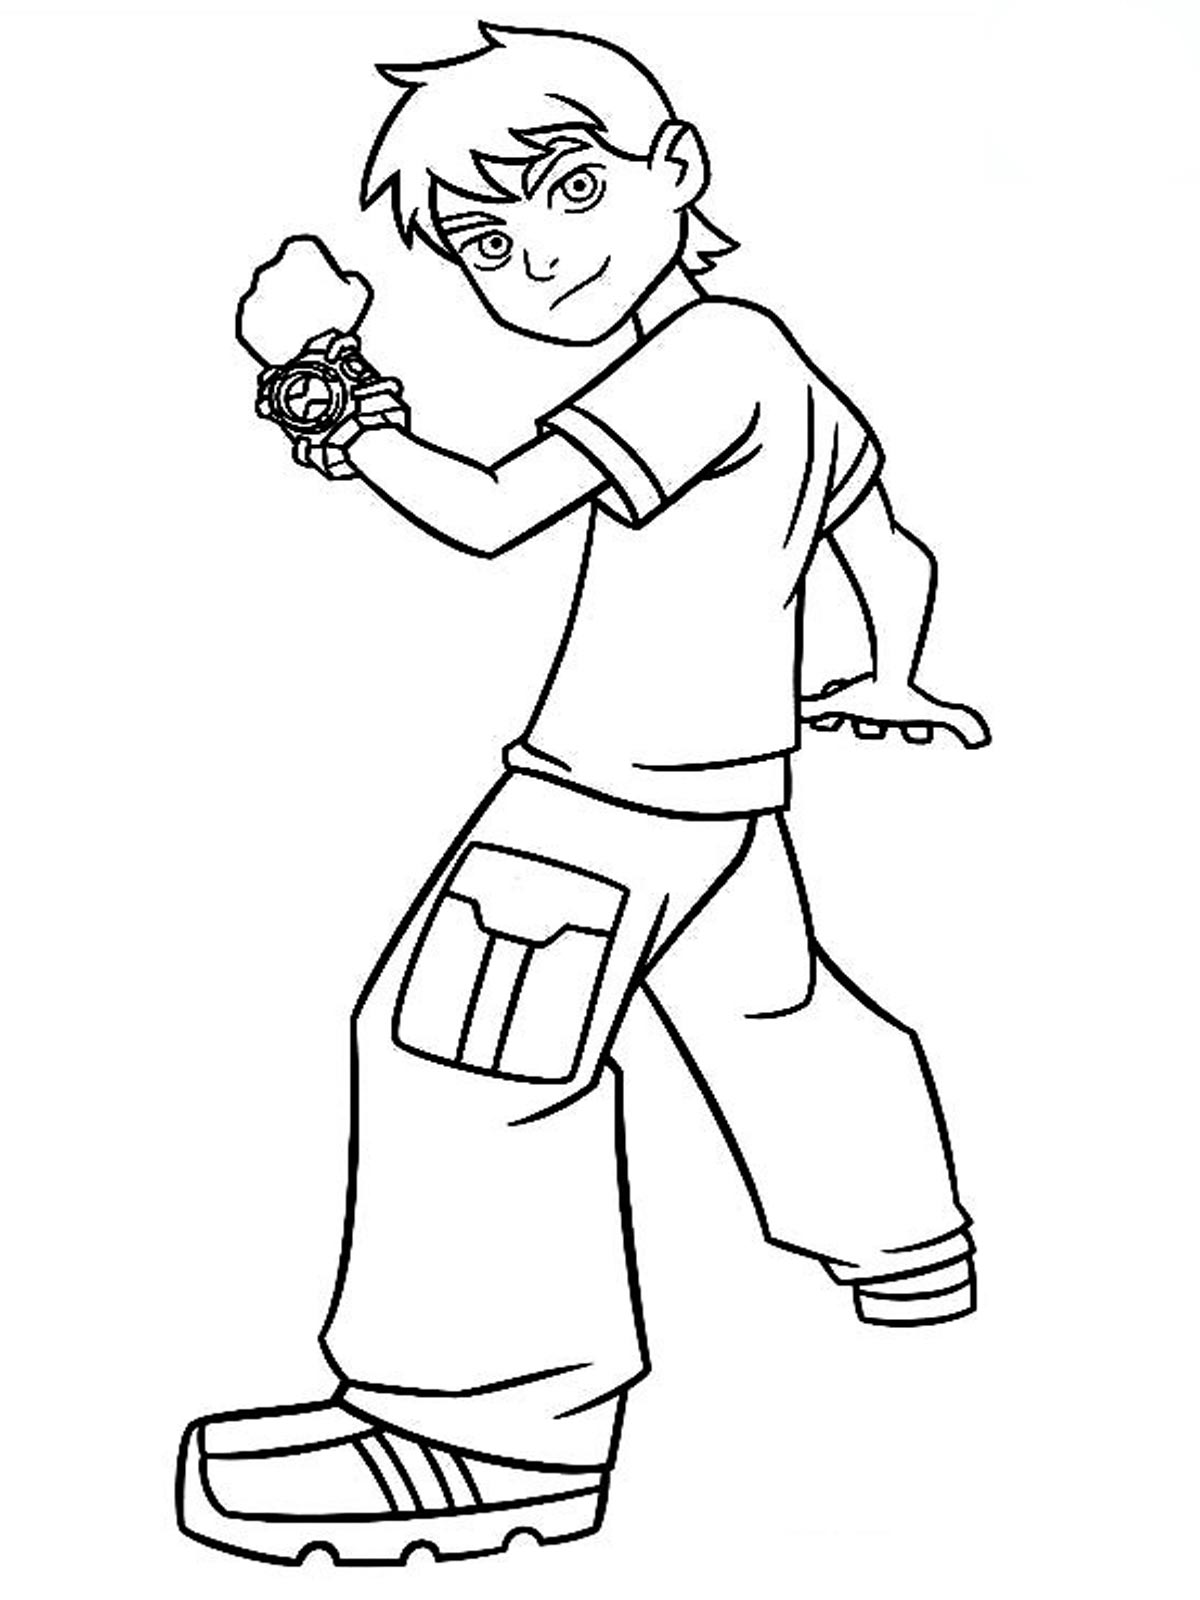 coloring pages for kids online top 25 free printable lisa frank coloring pages online online kids pages coloring for